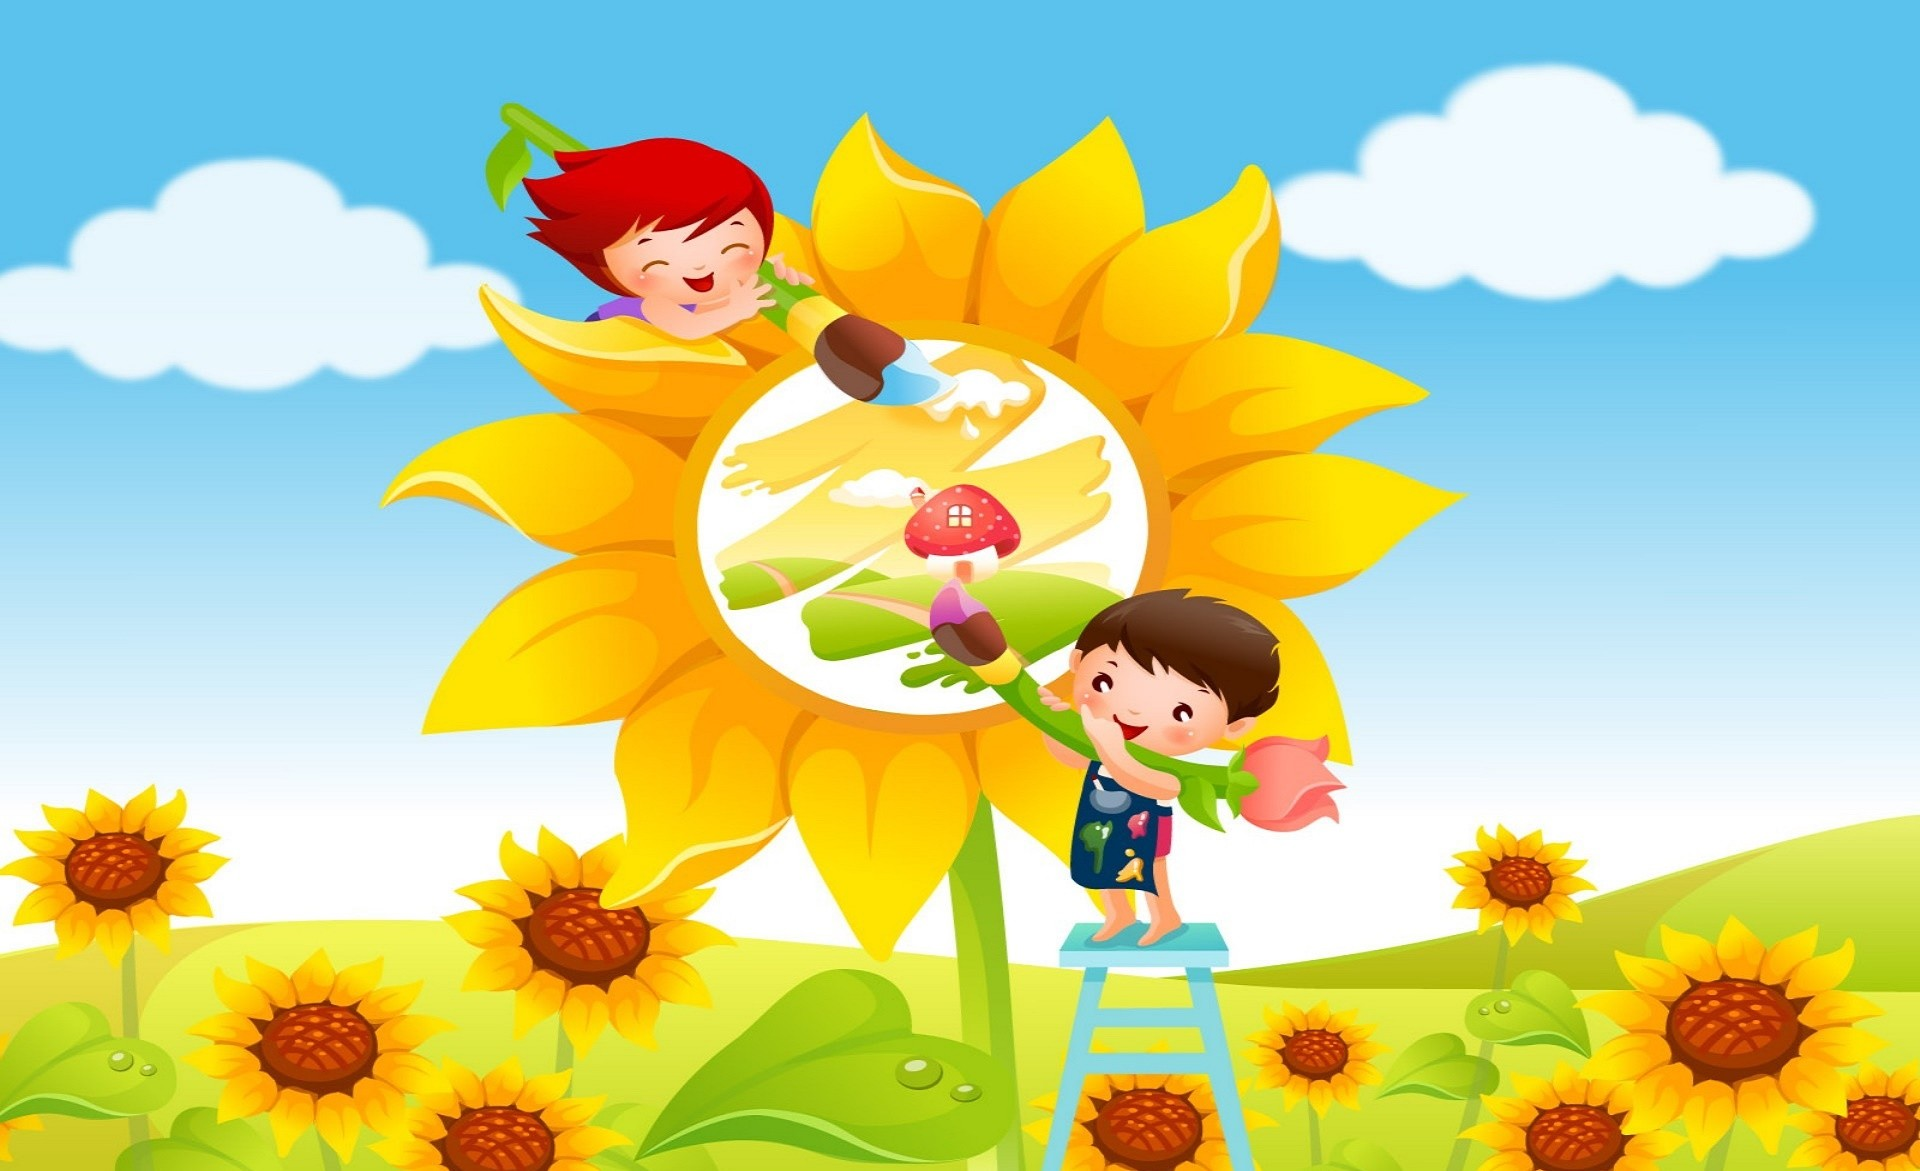 1920x1171 Cute Kids Free Cartoon Children Games Wallpapers.